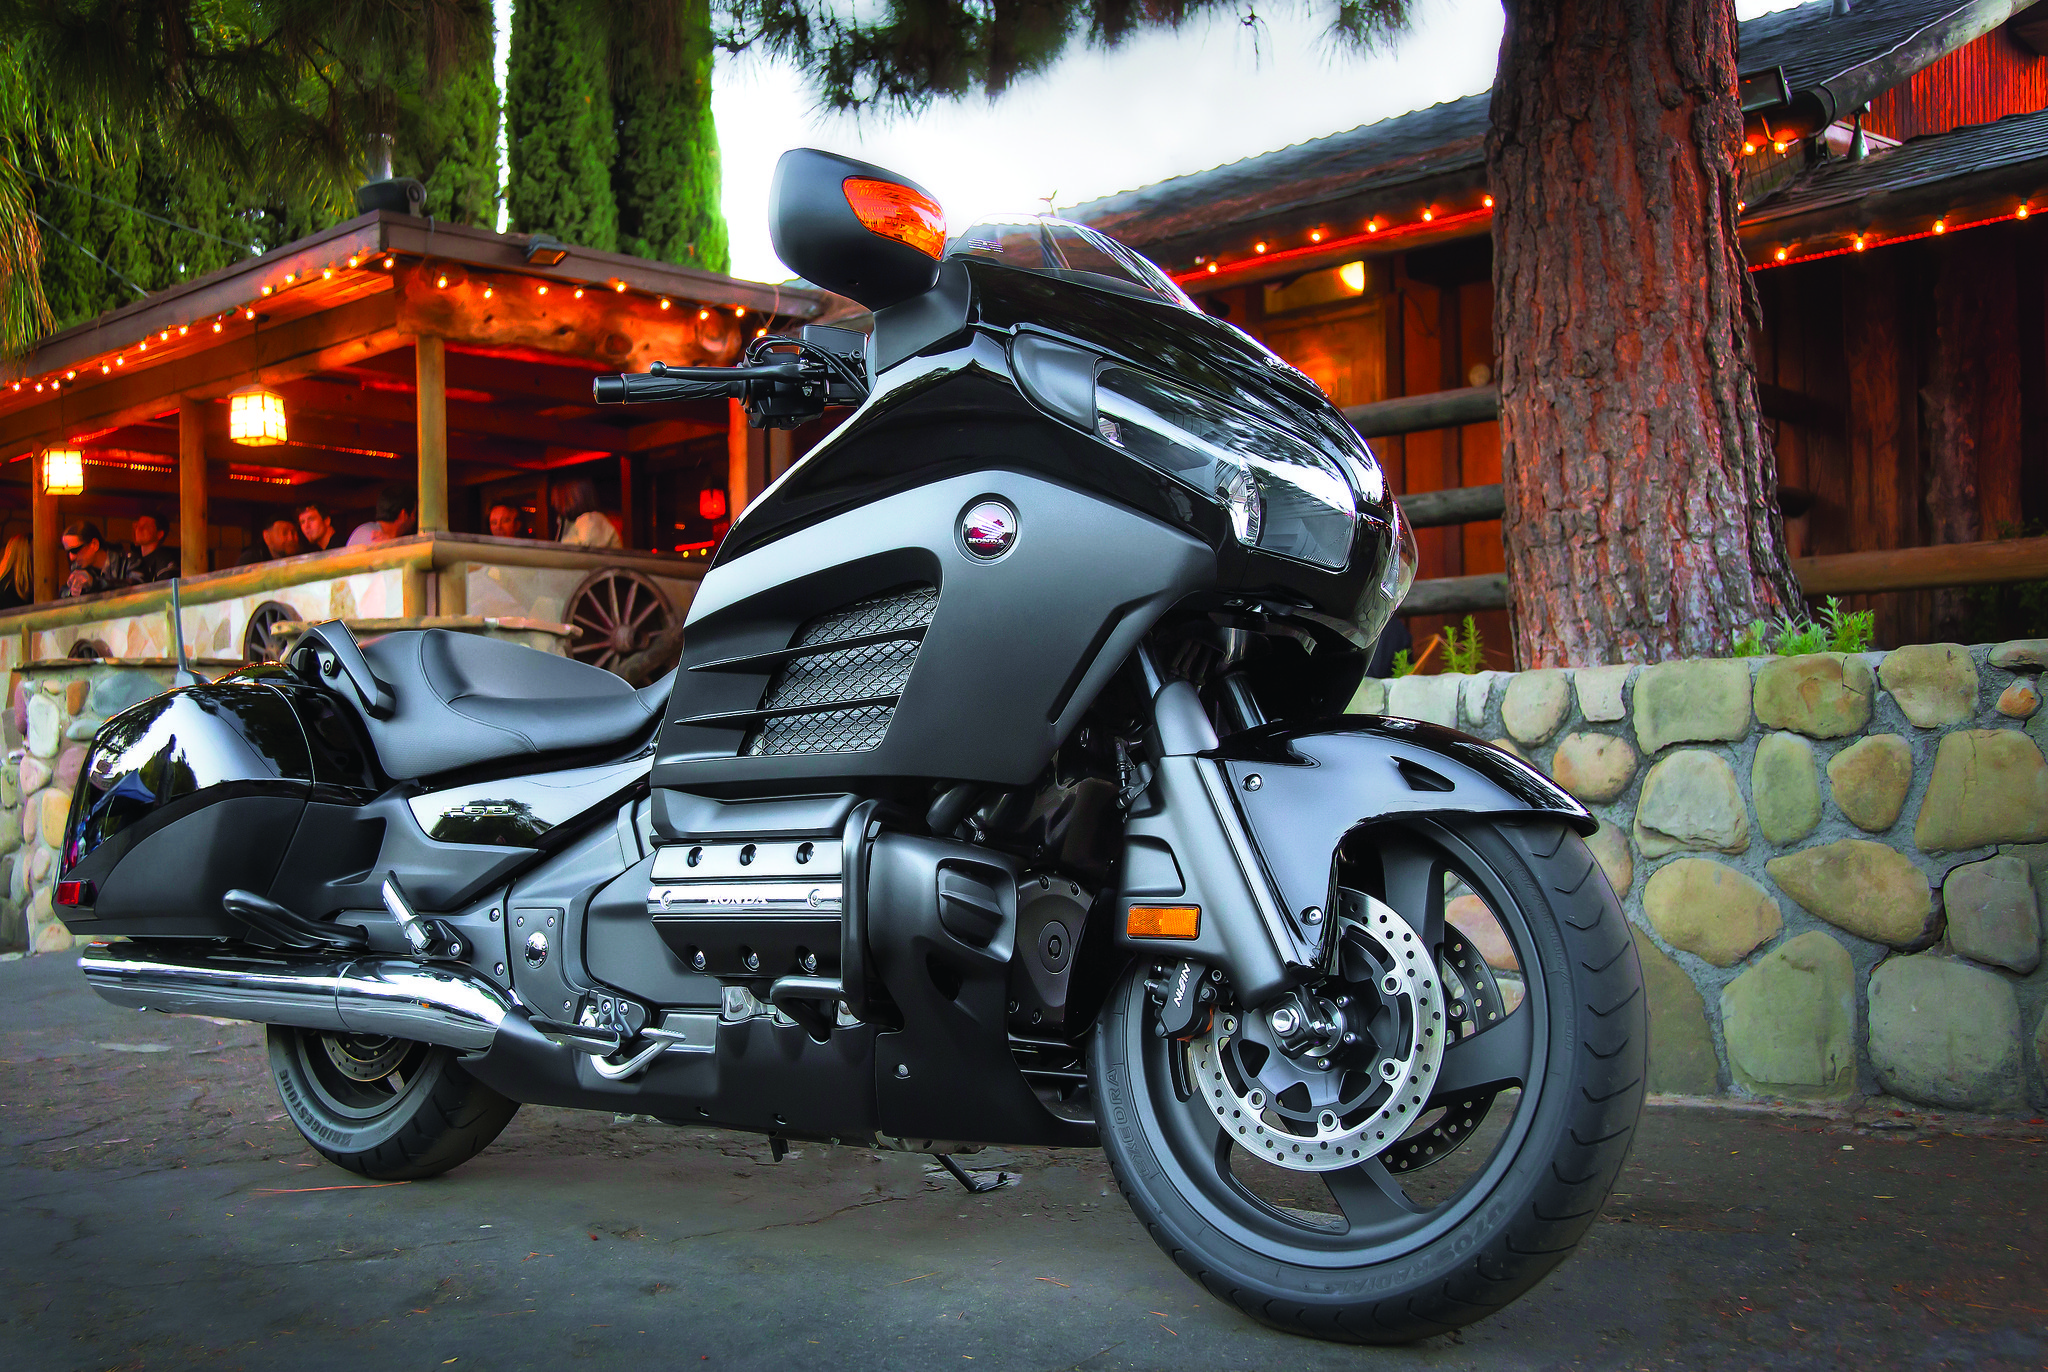 Gallery: 2013 Honda motorcycle lineup includes CB500s, Gold Wing F6B - Honda Gold Wing F6B